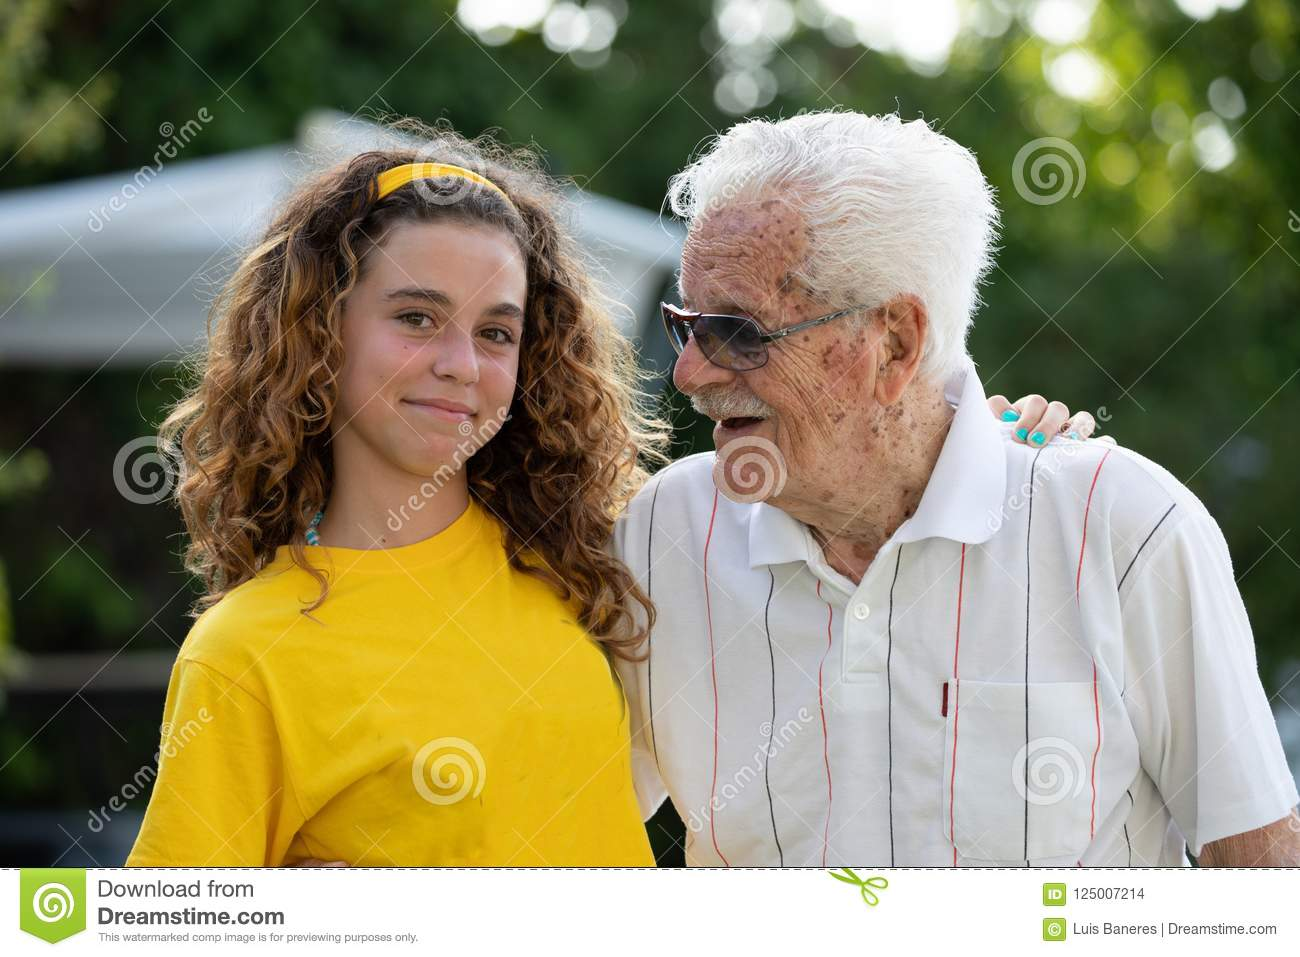 Communication on this topic: Grandfathers Are More Likely Than Ever to , grandfathers-are-more-likely-than-ever-to/